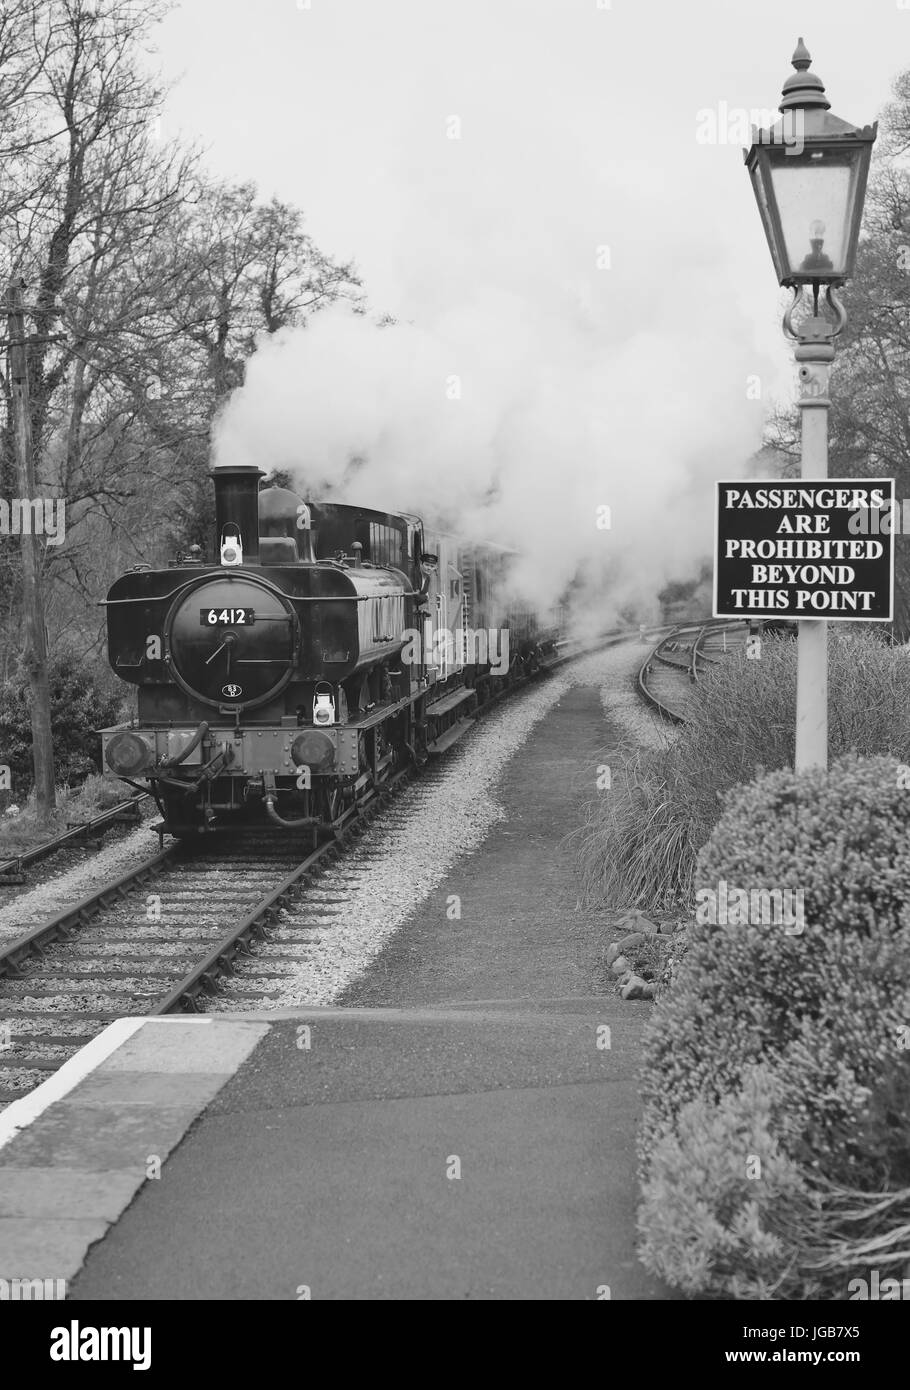 GWR 0-6-0 pannier tank No 6412 hauling a goods train through Staverton station on the South Devon Railway. - Stock Image